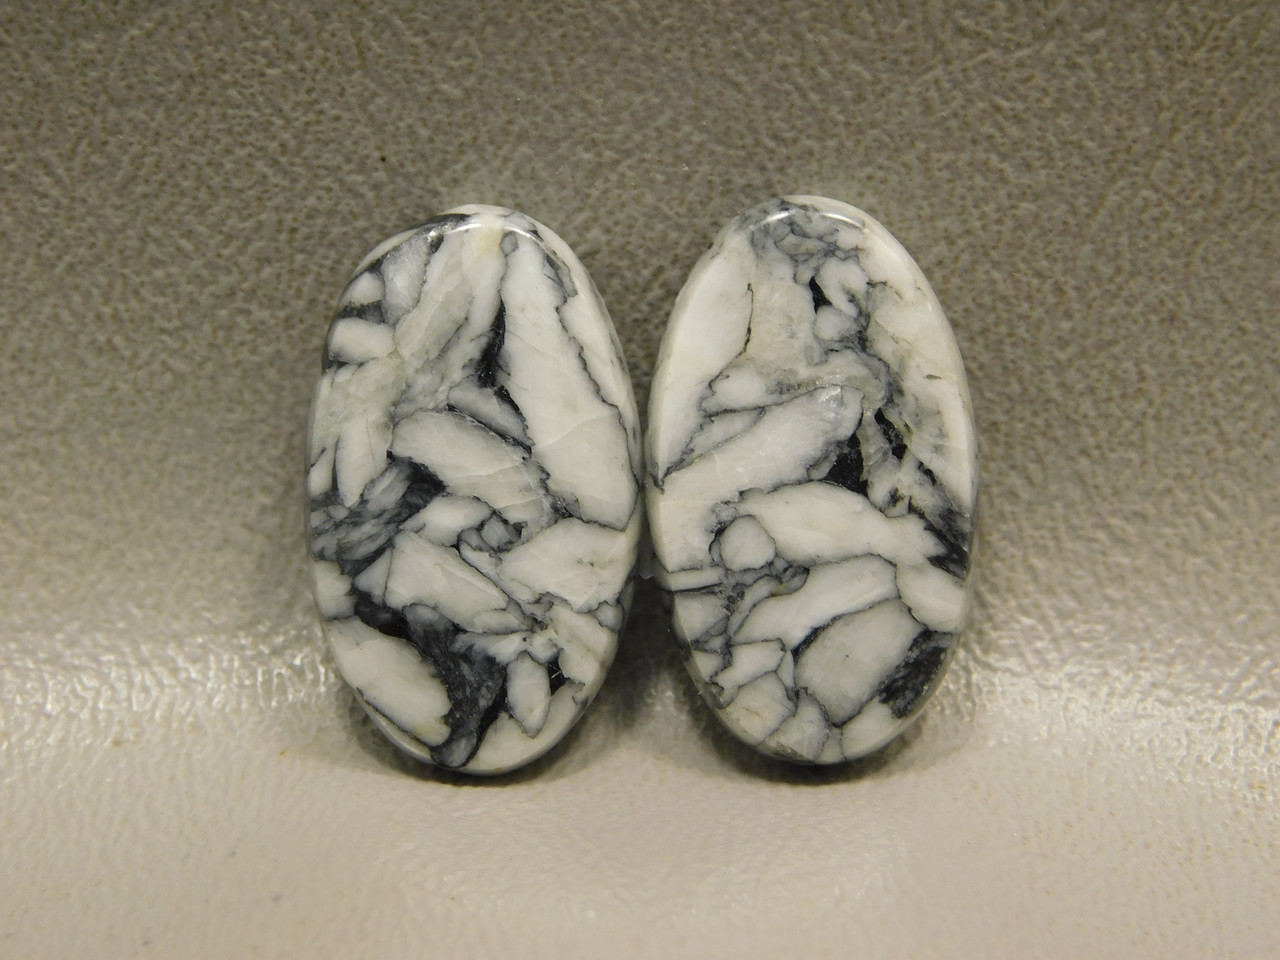 Pinolith or Pinolite Small Oval Matched Pair Stone Cabochons #3